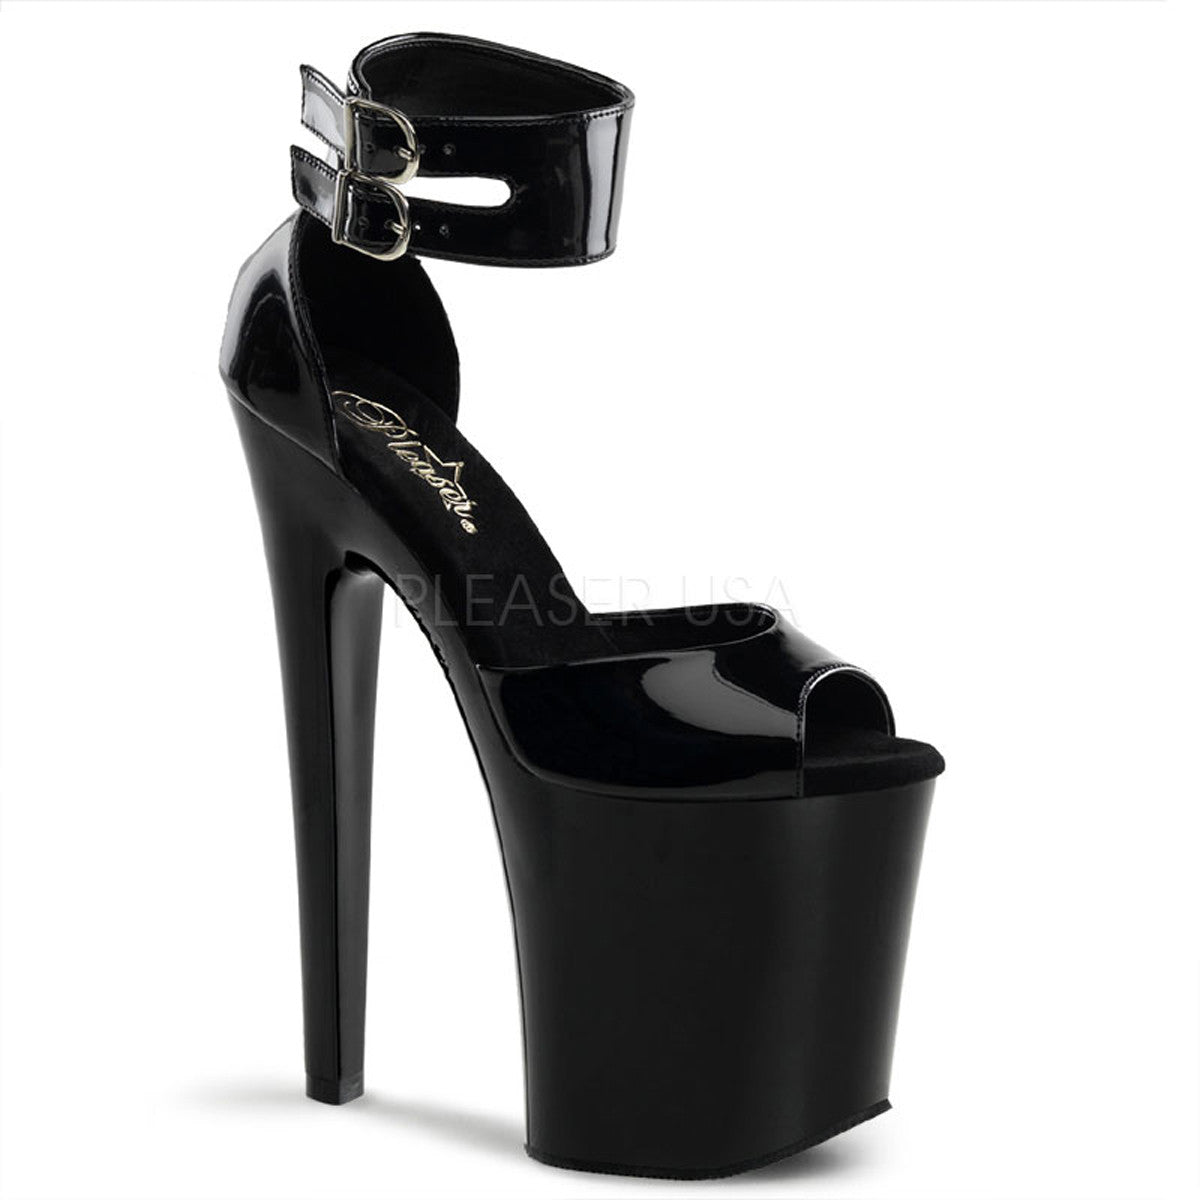 PLEASER XTREME-875 Black Pat Platform Sandals - Shoecup.com